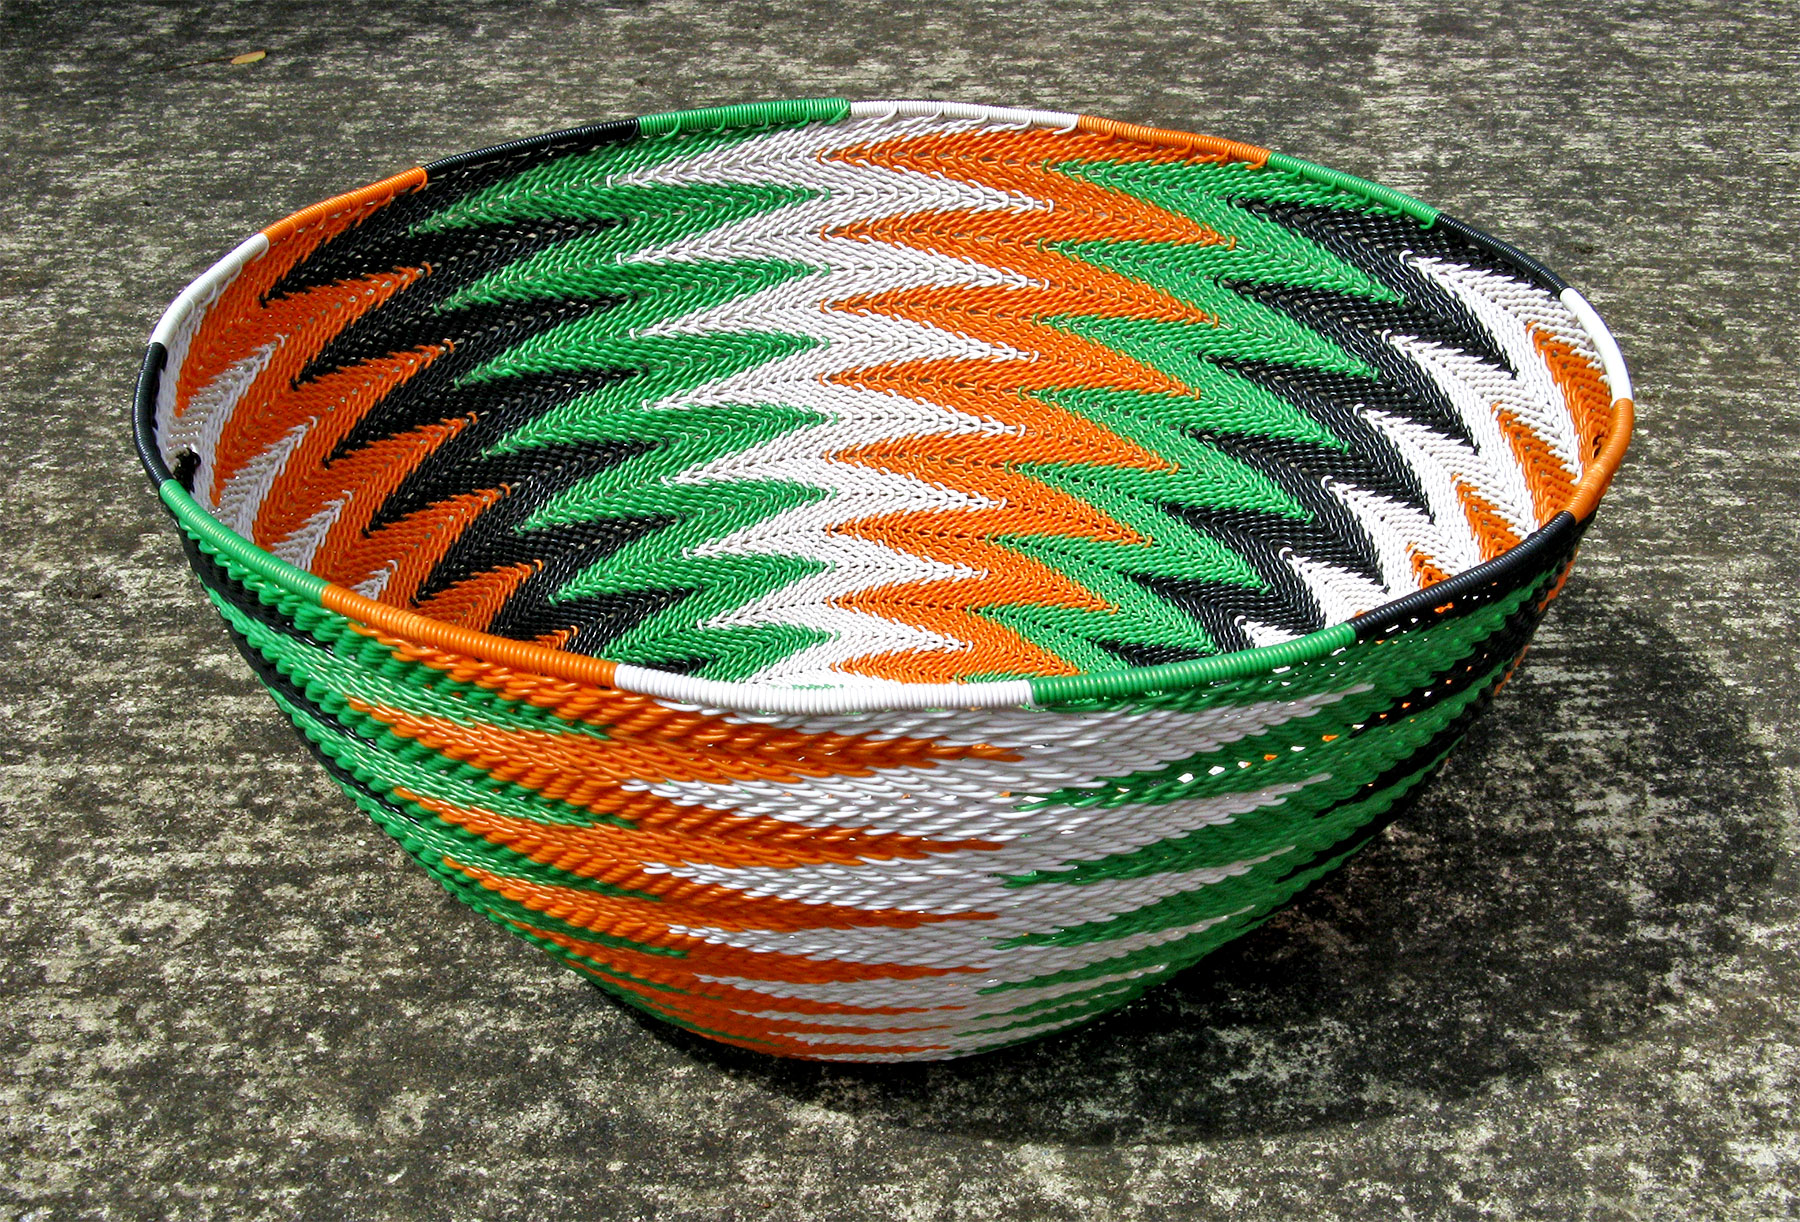 The basket I have donated to Animals Asia in a chevron pattern of black, white, green and orange wires.